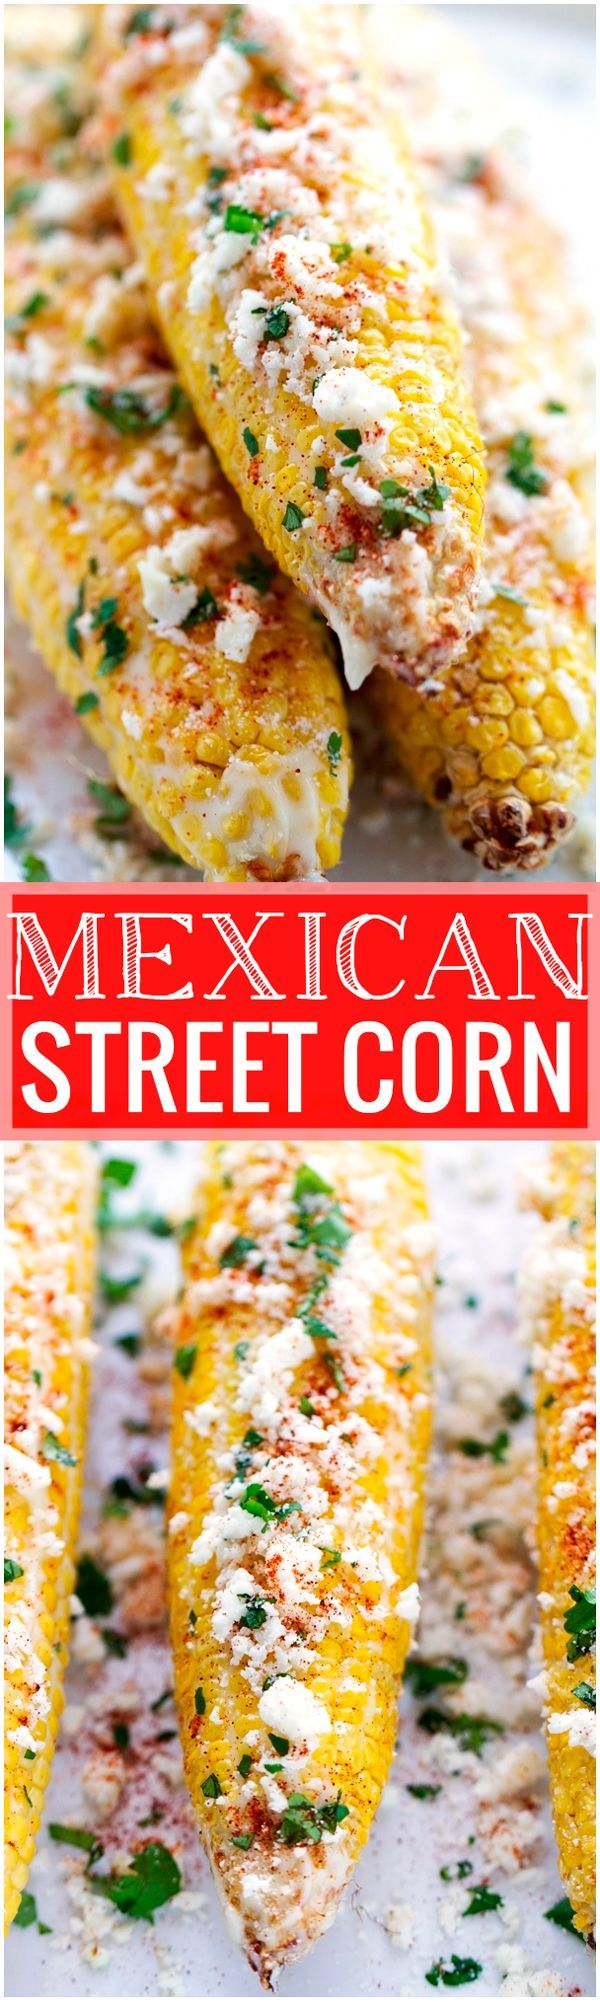 Mexican Street Corn - perfect to serve at barbecues and on Cinco de Mayo! Tender corn with garlic mayo, lime juice, cotija cheese, and cilantro!  #cornonthecob #mexicanstreetcorn #cincodemayo | Littlespicejar.com